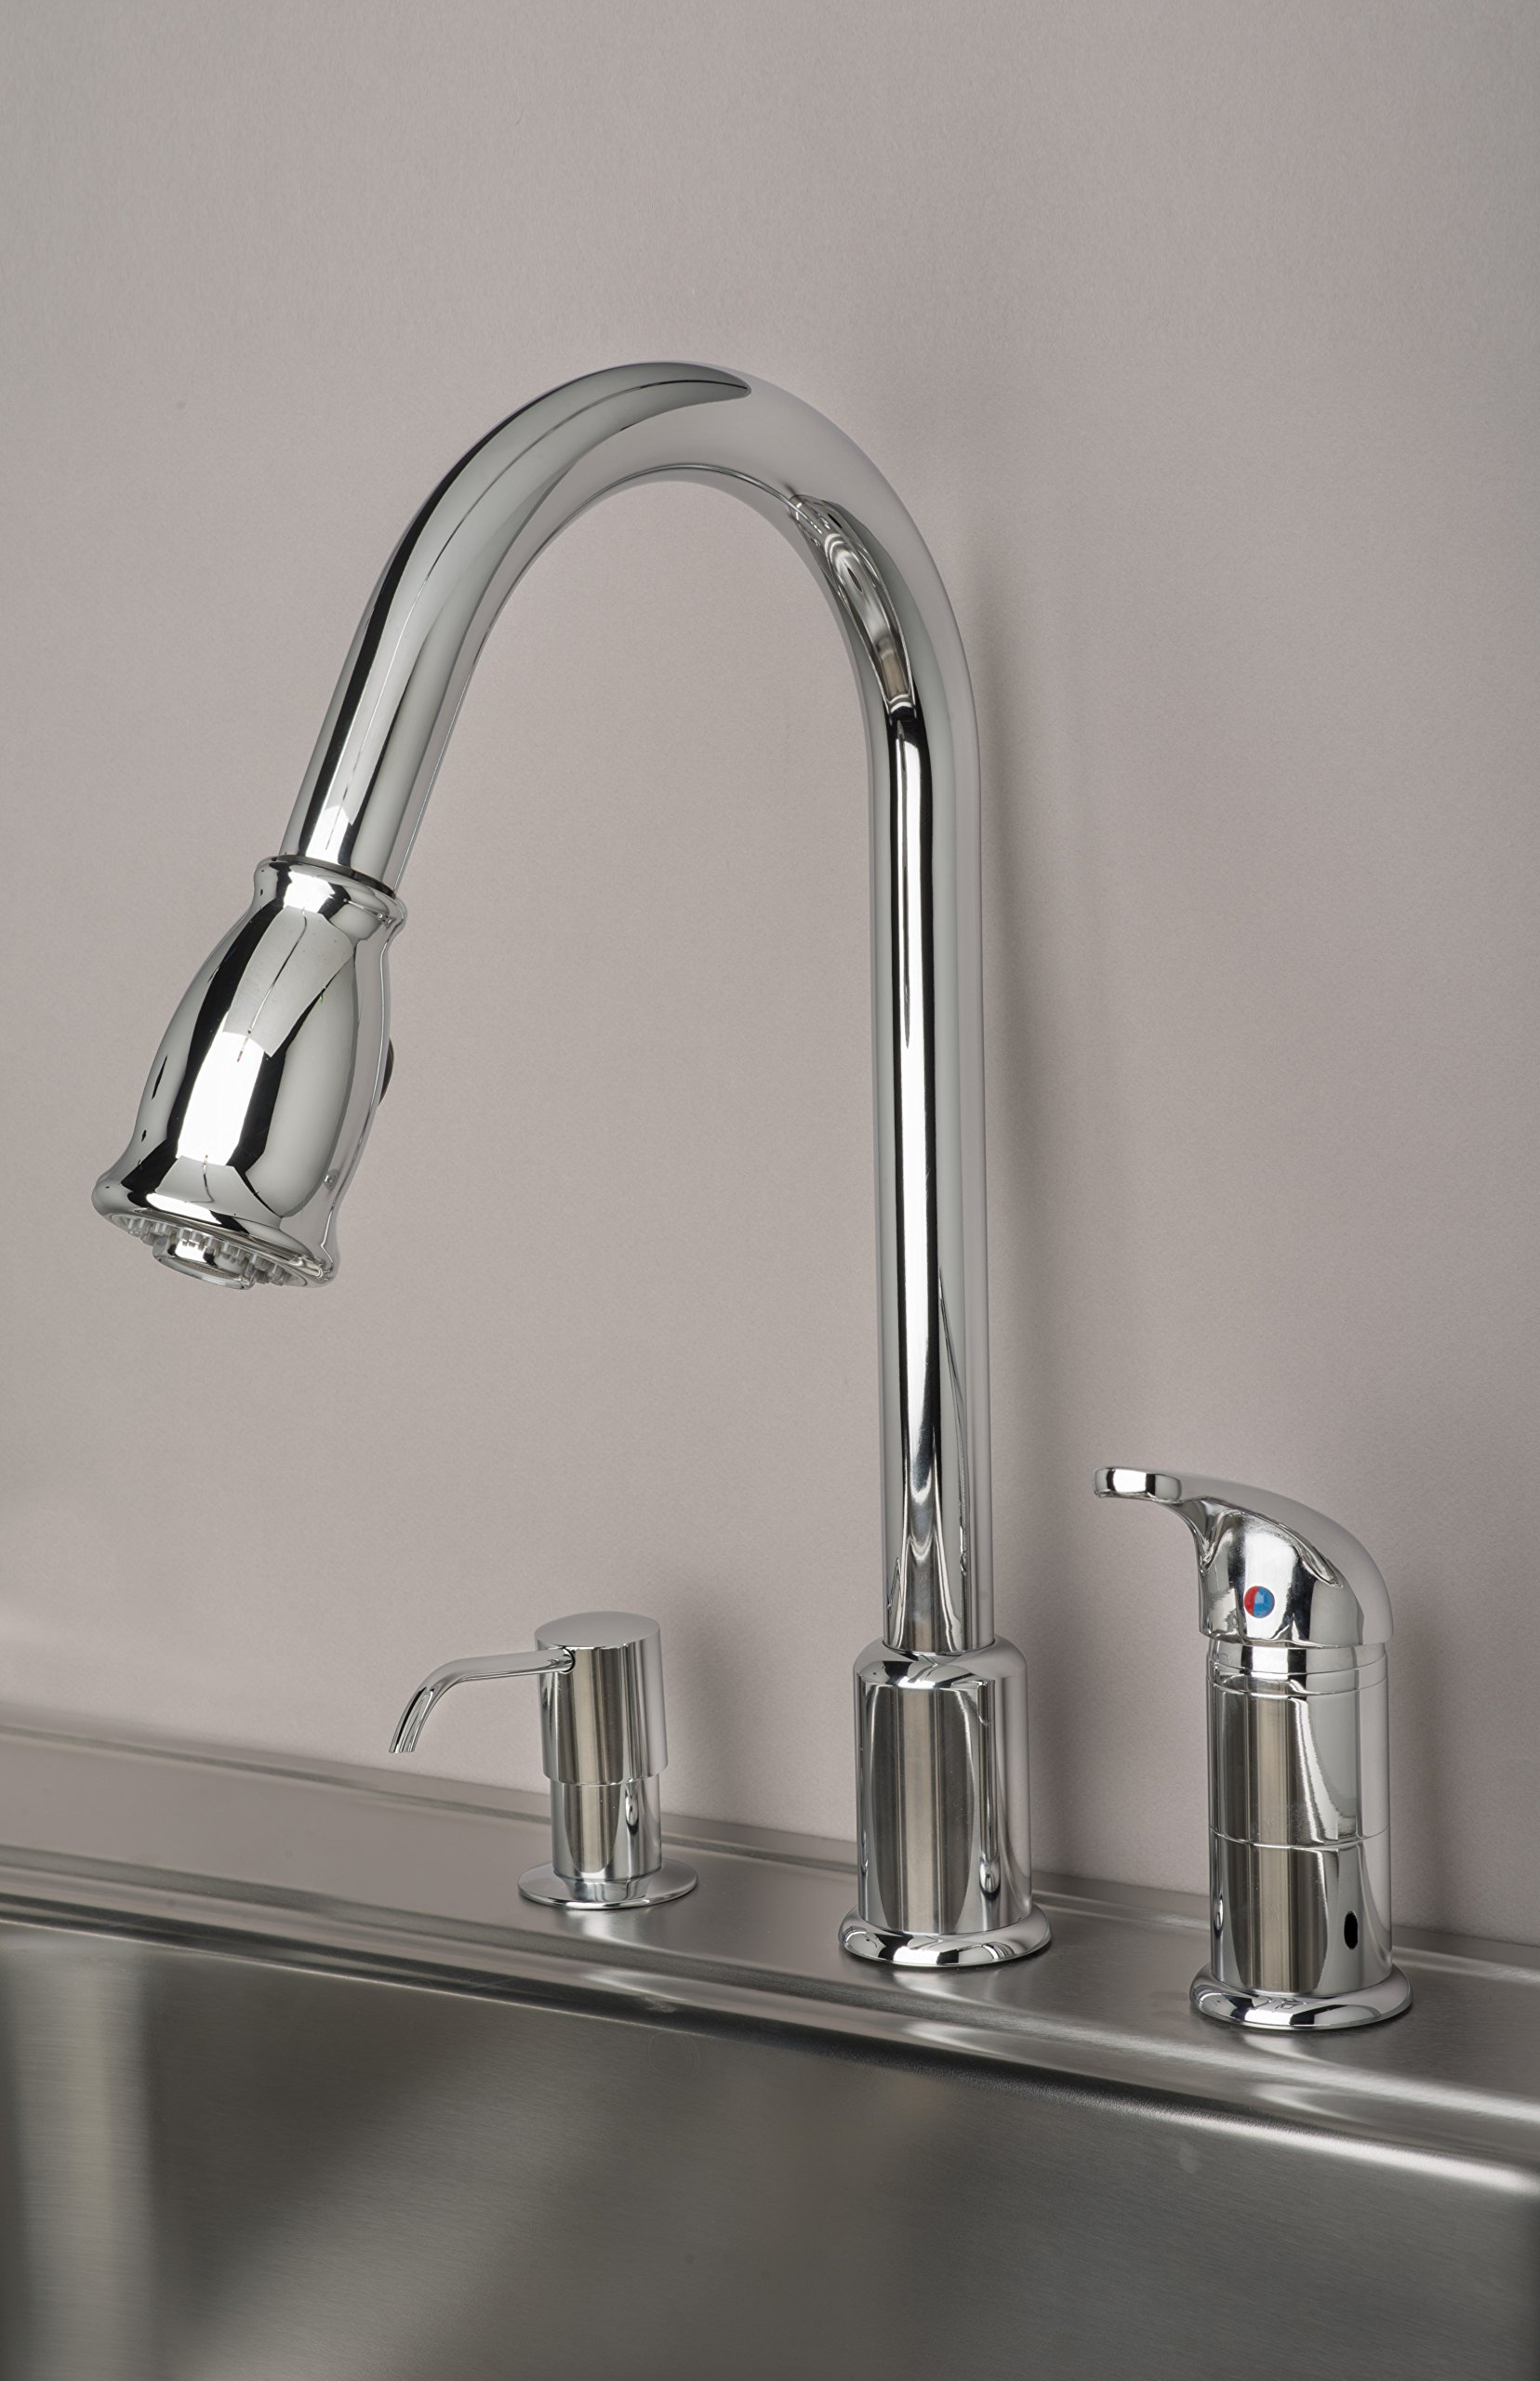 Builders Shoppe 1170CP 16'' Single Handle Pull-Down Kitchen Faucet With Soap Dispenser Chrome Finish by Builders Shoppe (Image #3)